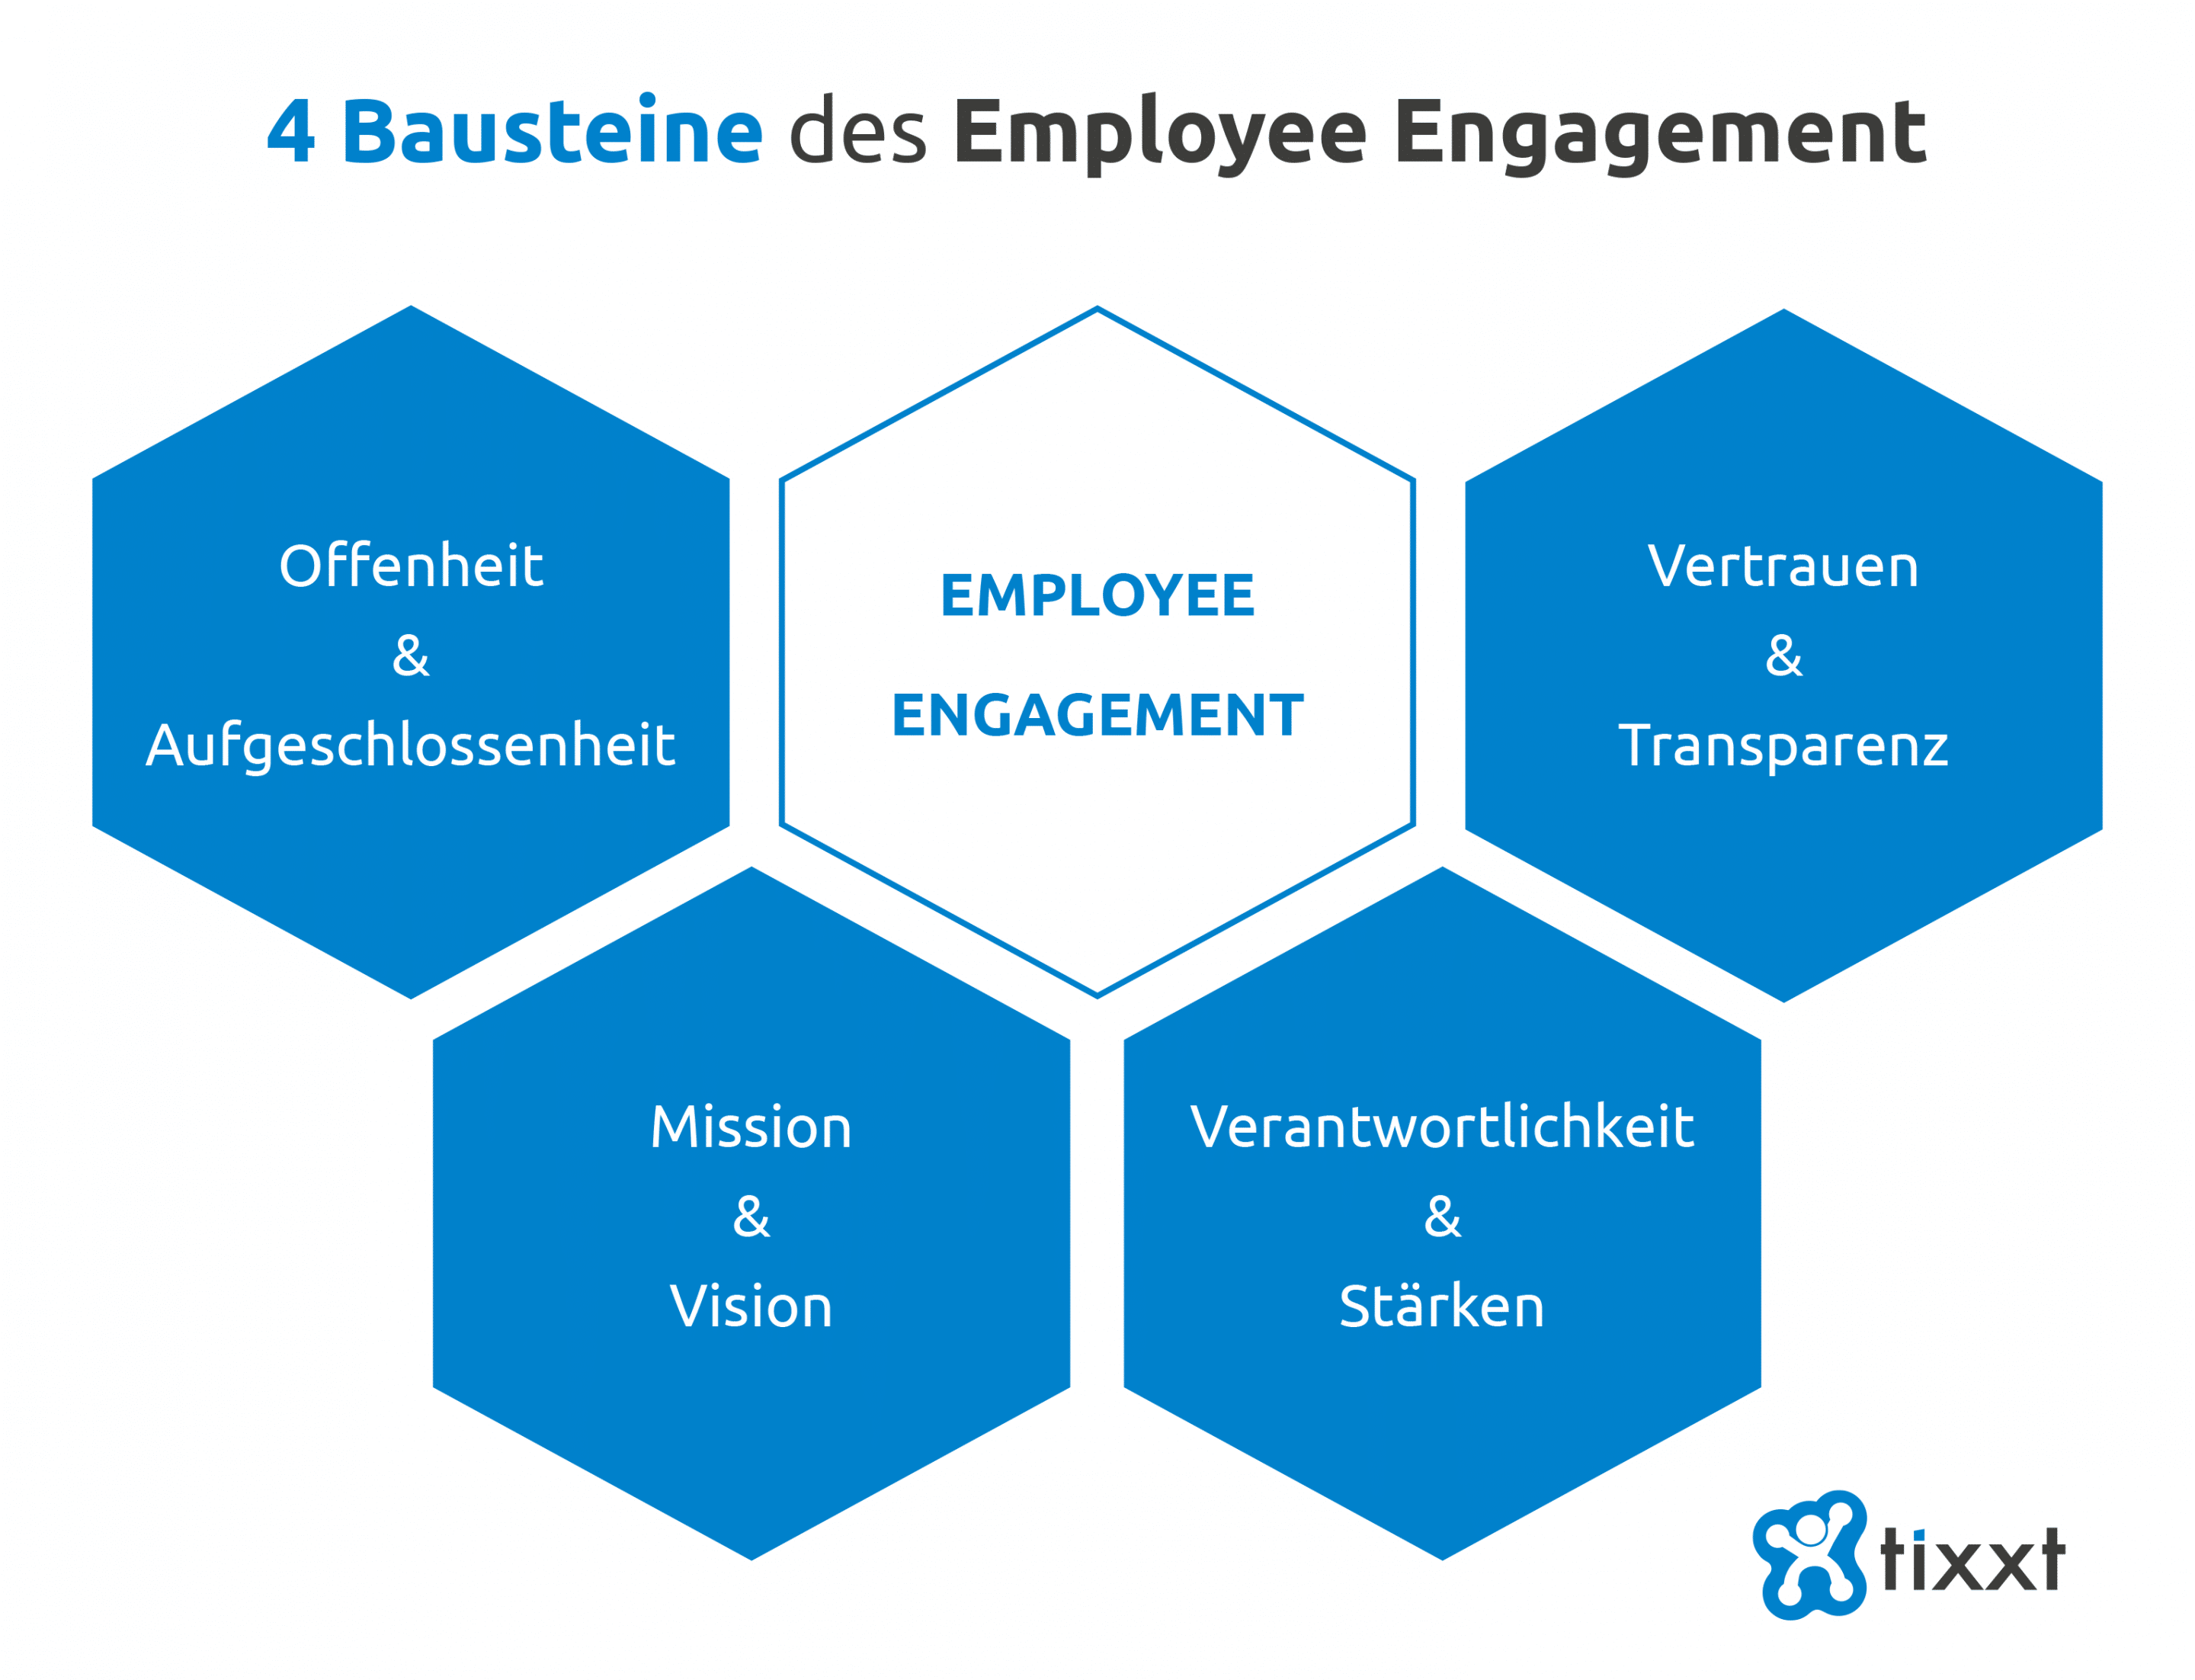 4 Bausteine des Employee Engagement